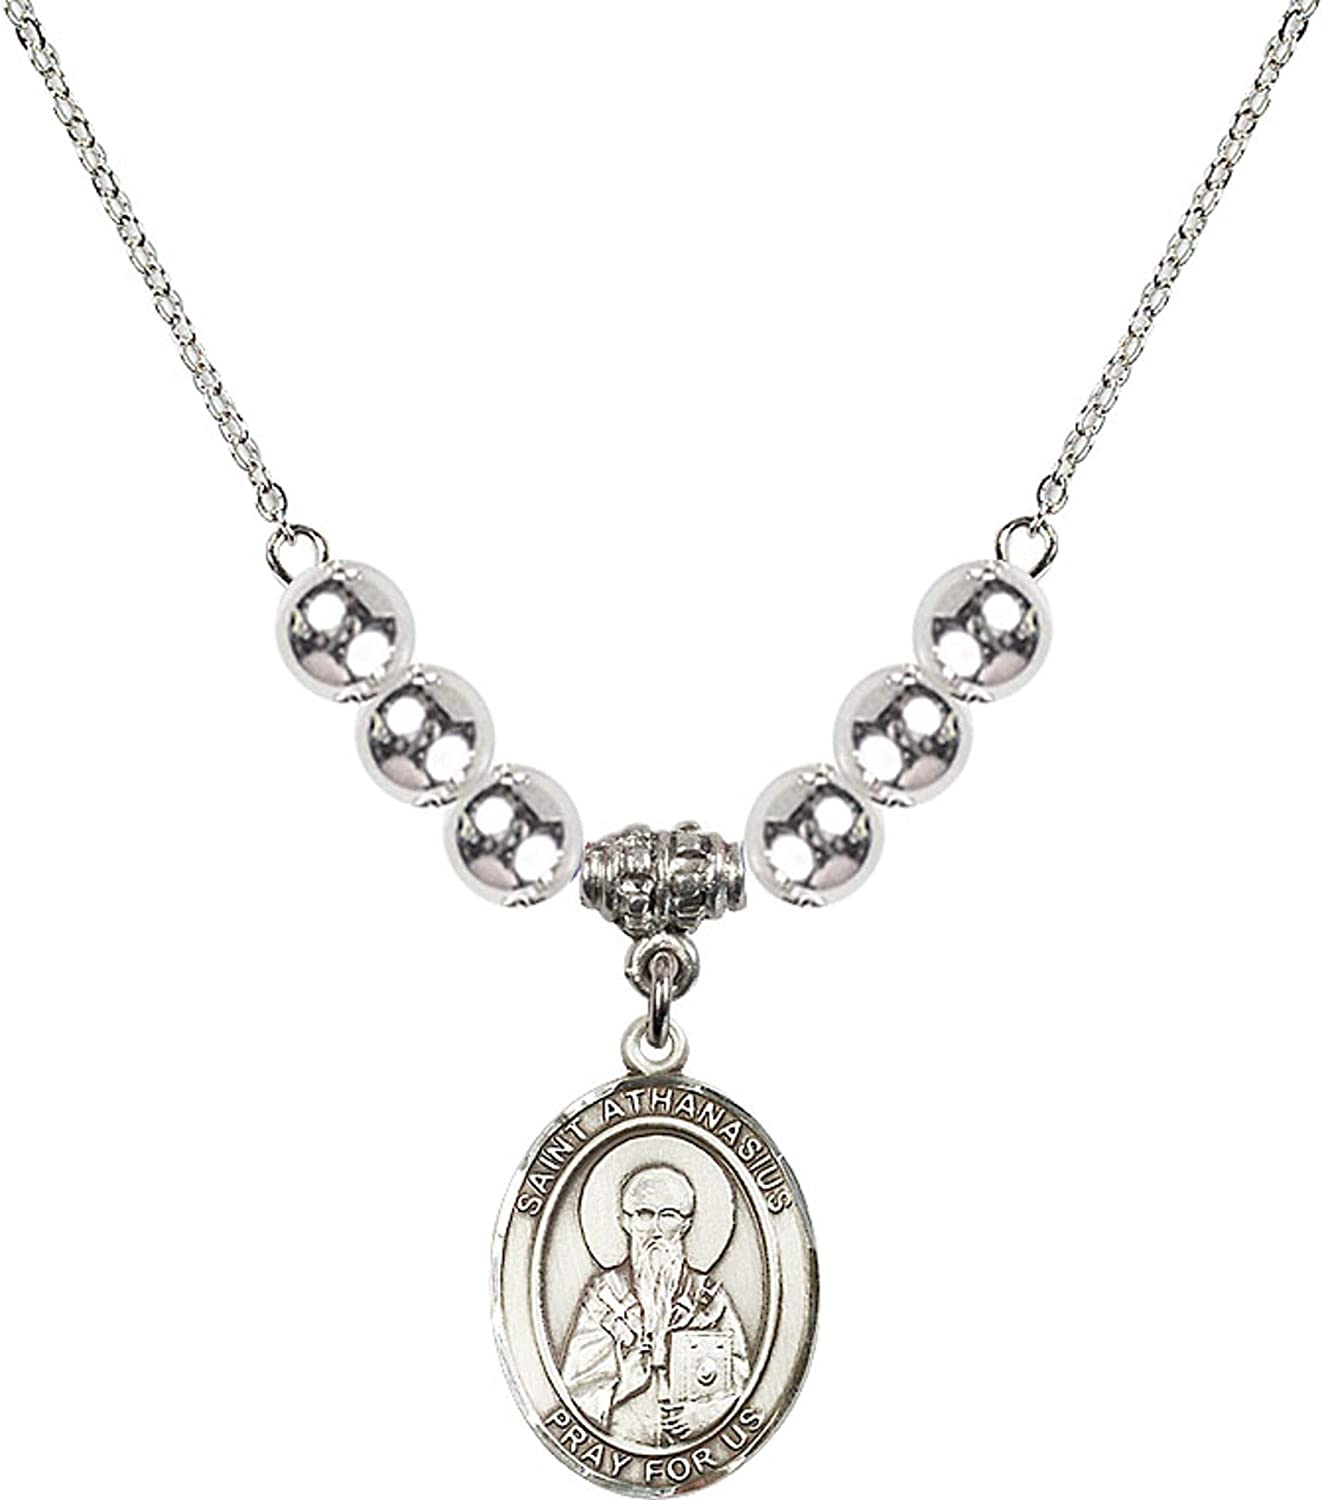 Bonyak Jewelry 18 Inch Rhodium Plated Necklace w// 6mm Sterling Silver Beads and Saint Athanasius Charm